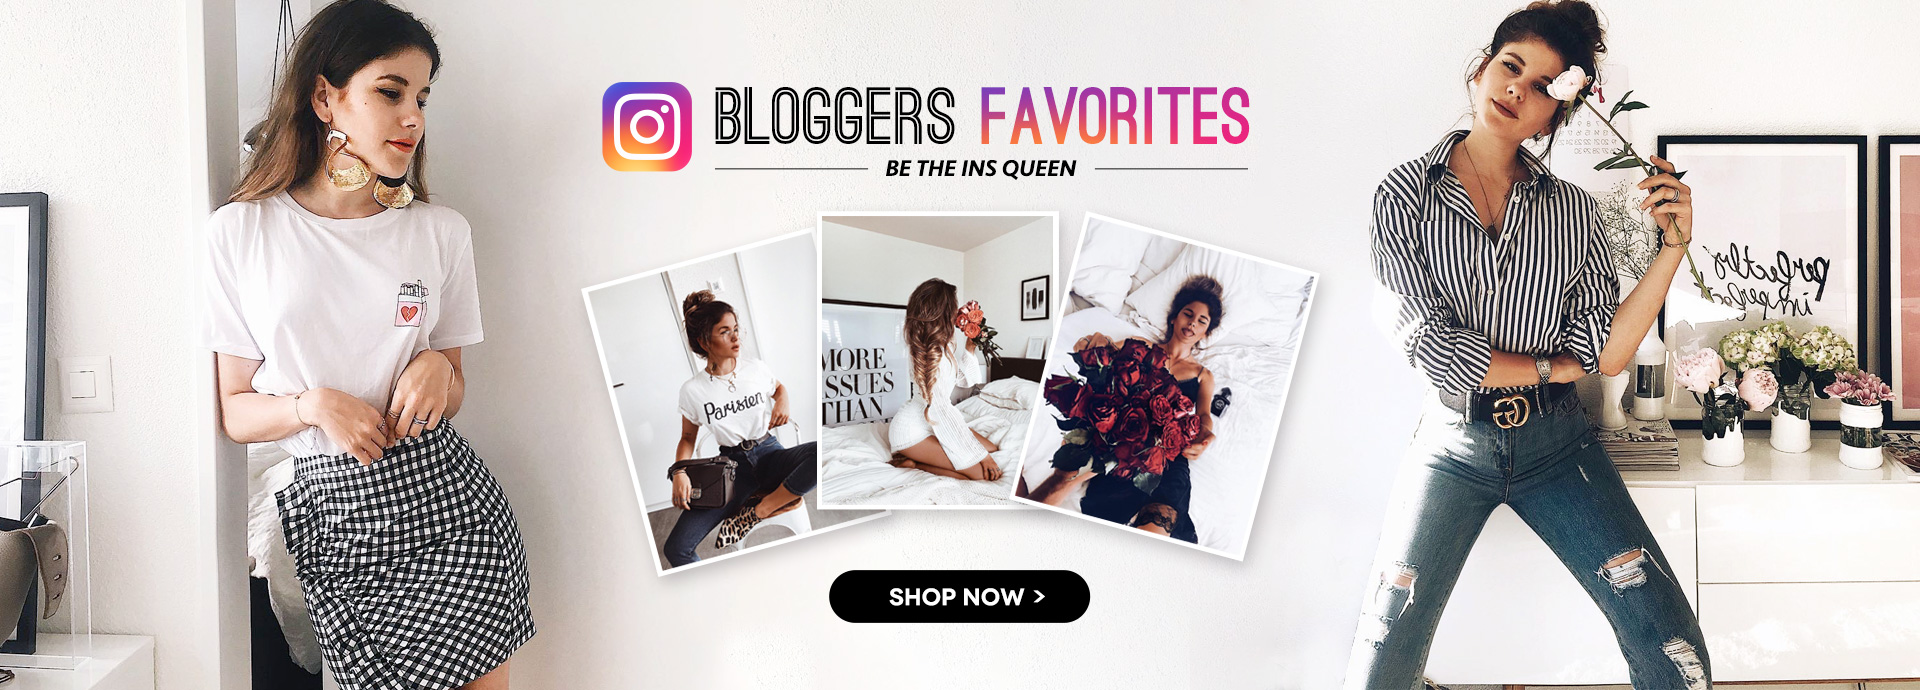 Bloggers Favorites